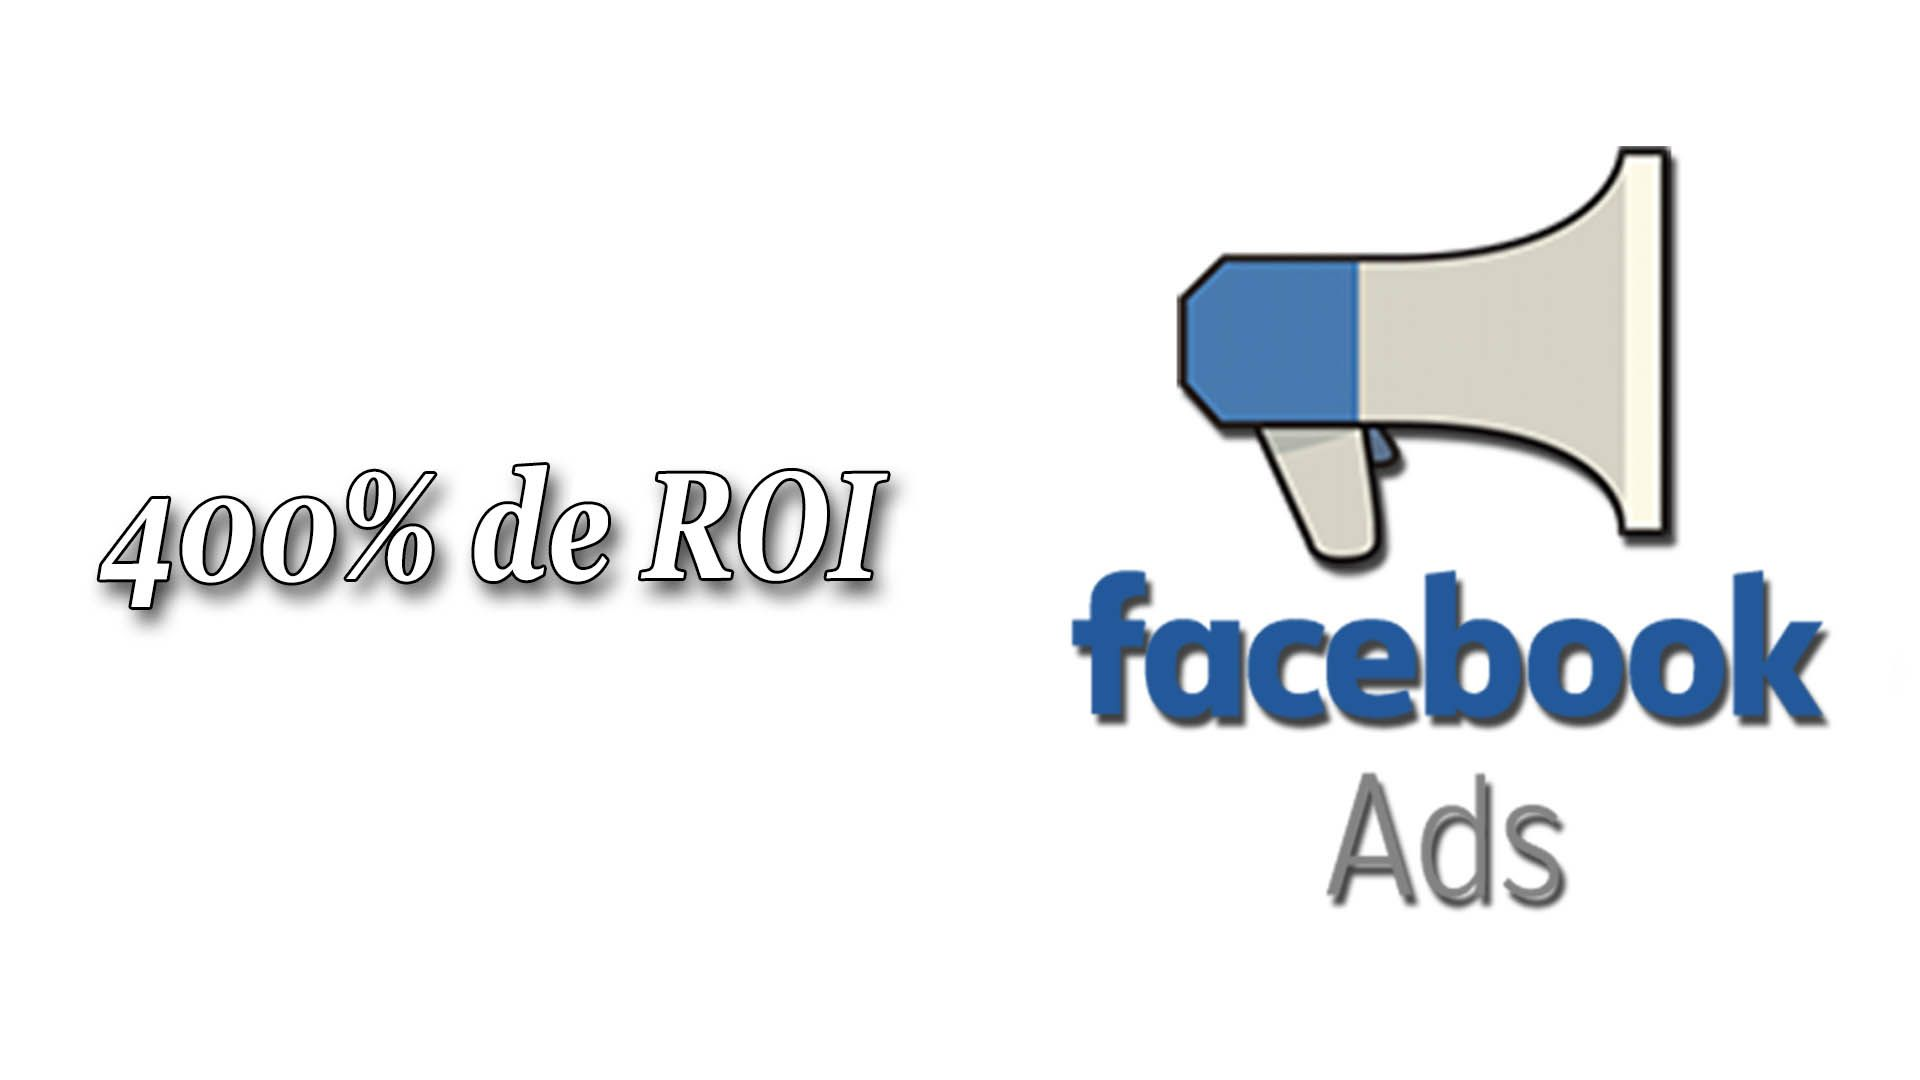 Cette publicité sur Facebook a généré un ROI de 400% #GrowthHacking #WEbMarketing #FormationGrowthHacking #CentreDeFormationFrance #TunnelAARRR #AARRR #SocialMedia #CommunityManagement #SEO #FacebookAds #acquisition #revenu #ROI